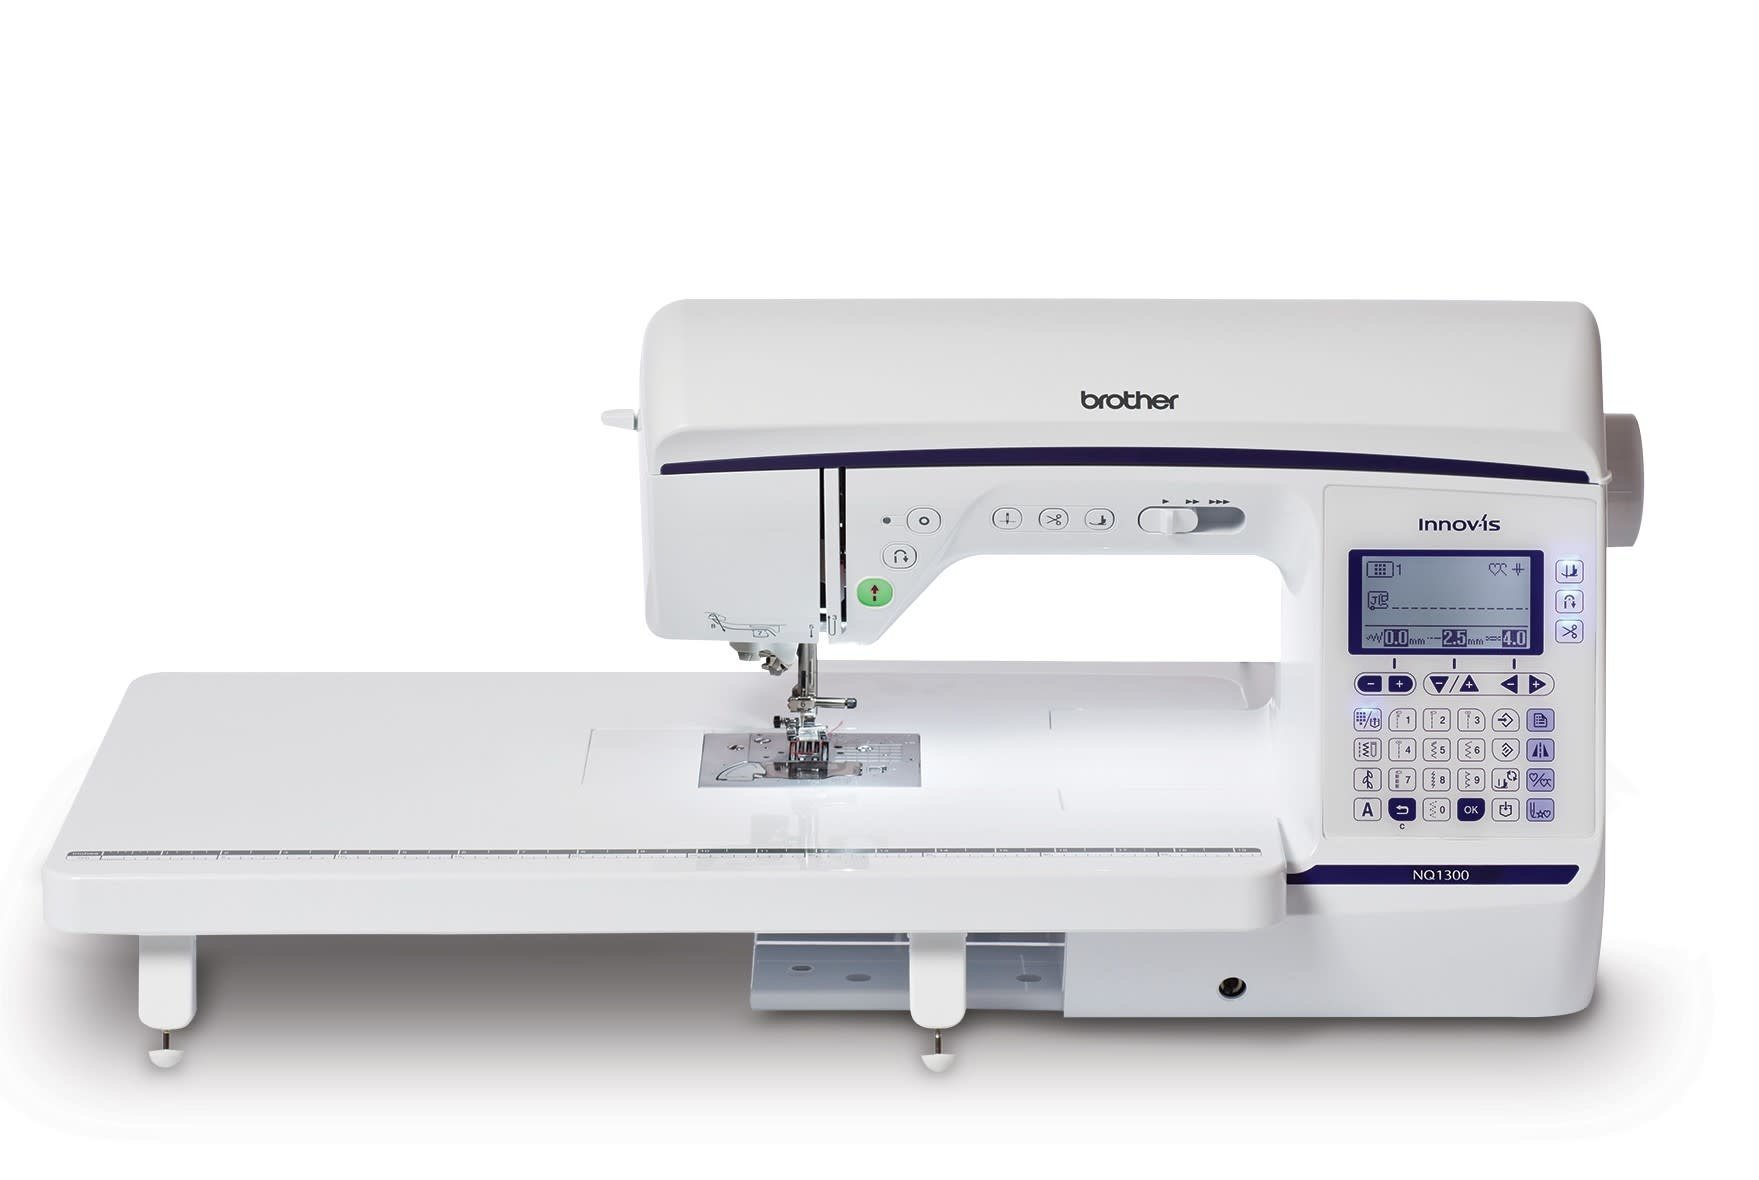 Brother NQ1300 Computerized Sewing Machine - Open Box Model Only